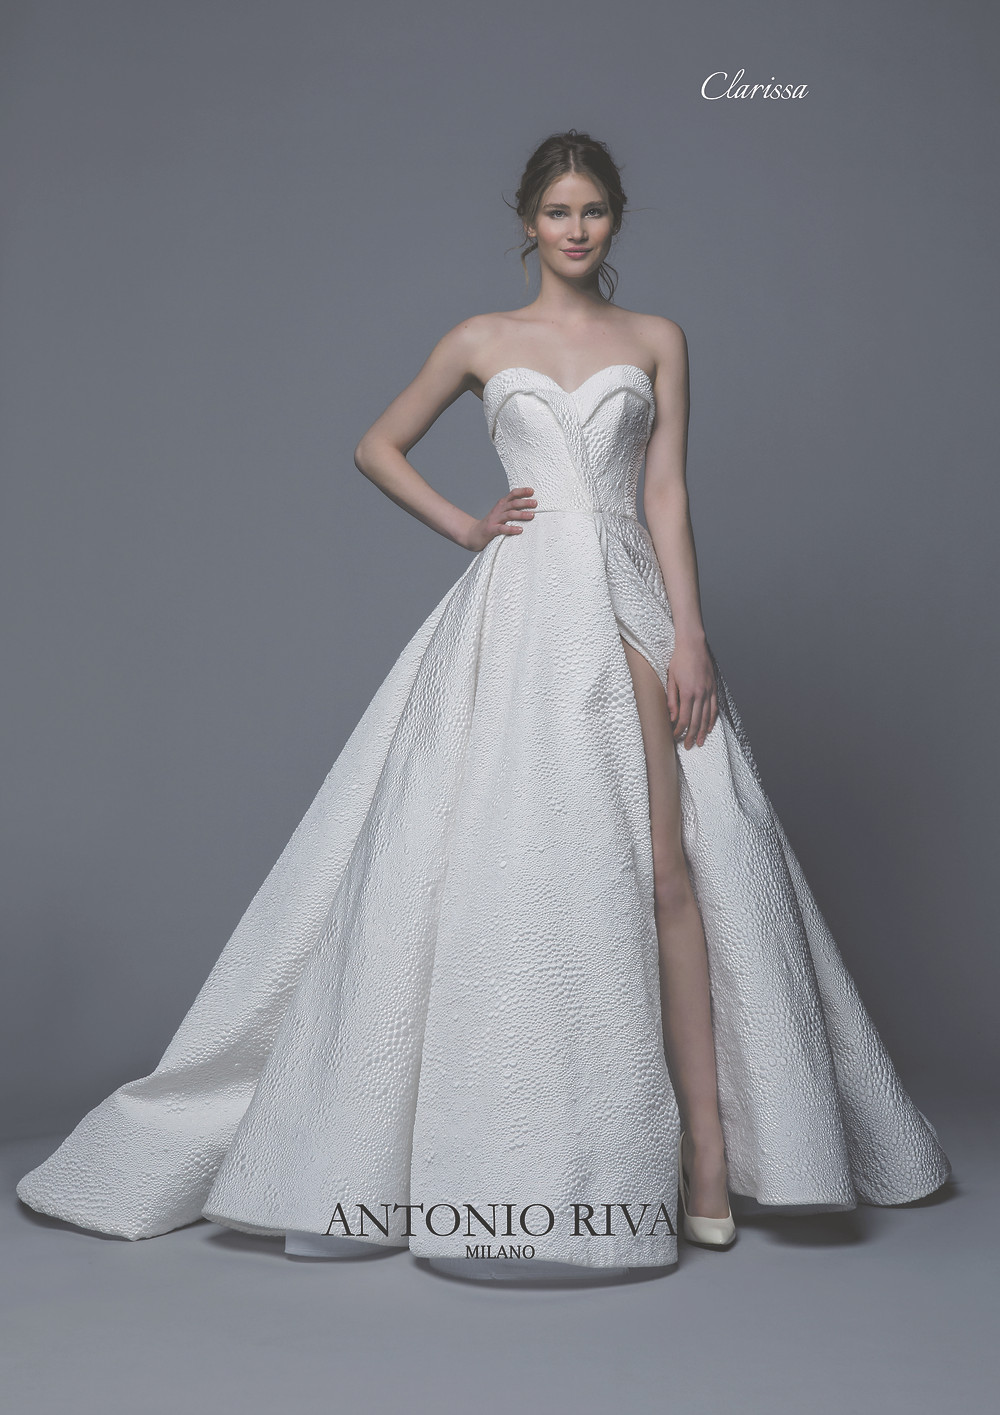 An Antonio Riva 2020 strapless ball gown wedding dress with a high slit and a sweetheart neckline